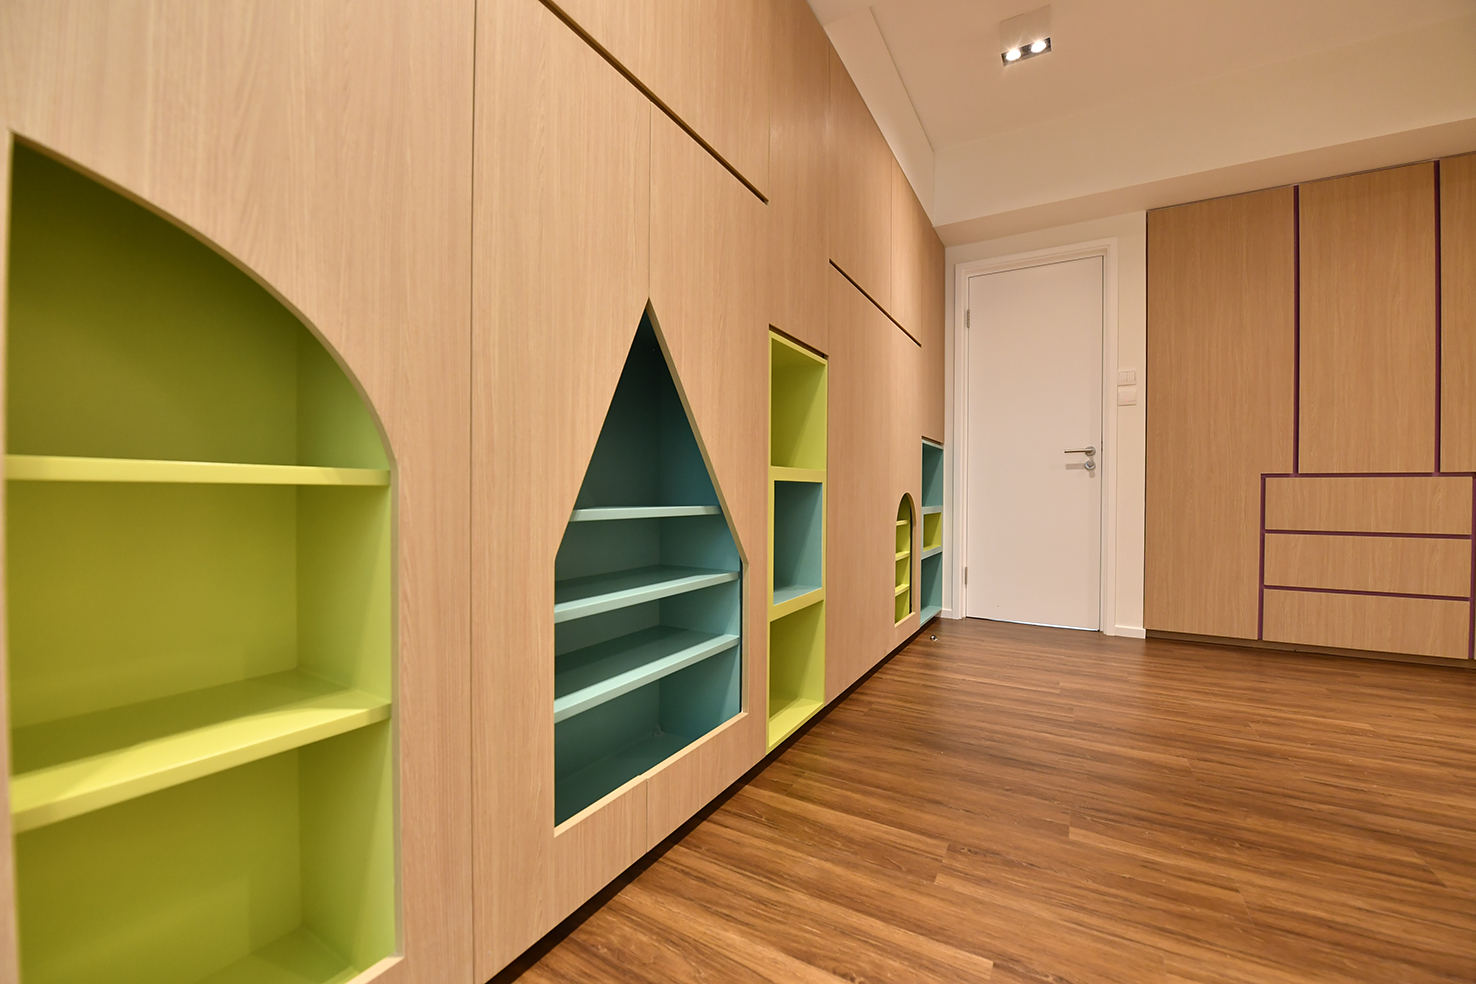 家居設計 Home Design hk 山景觀 Mountain Scape Apartment  (7)